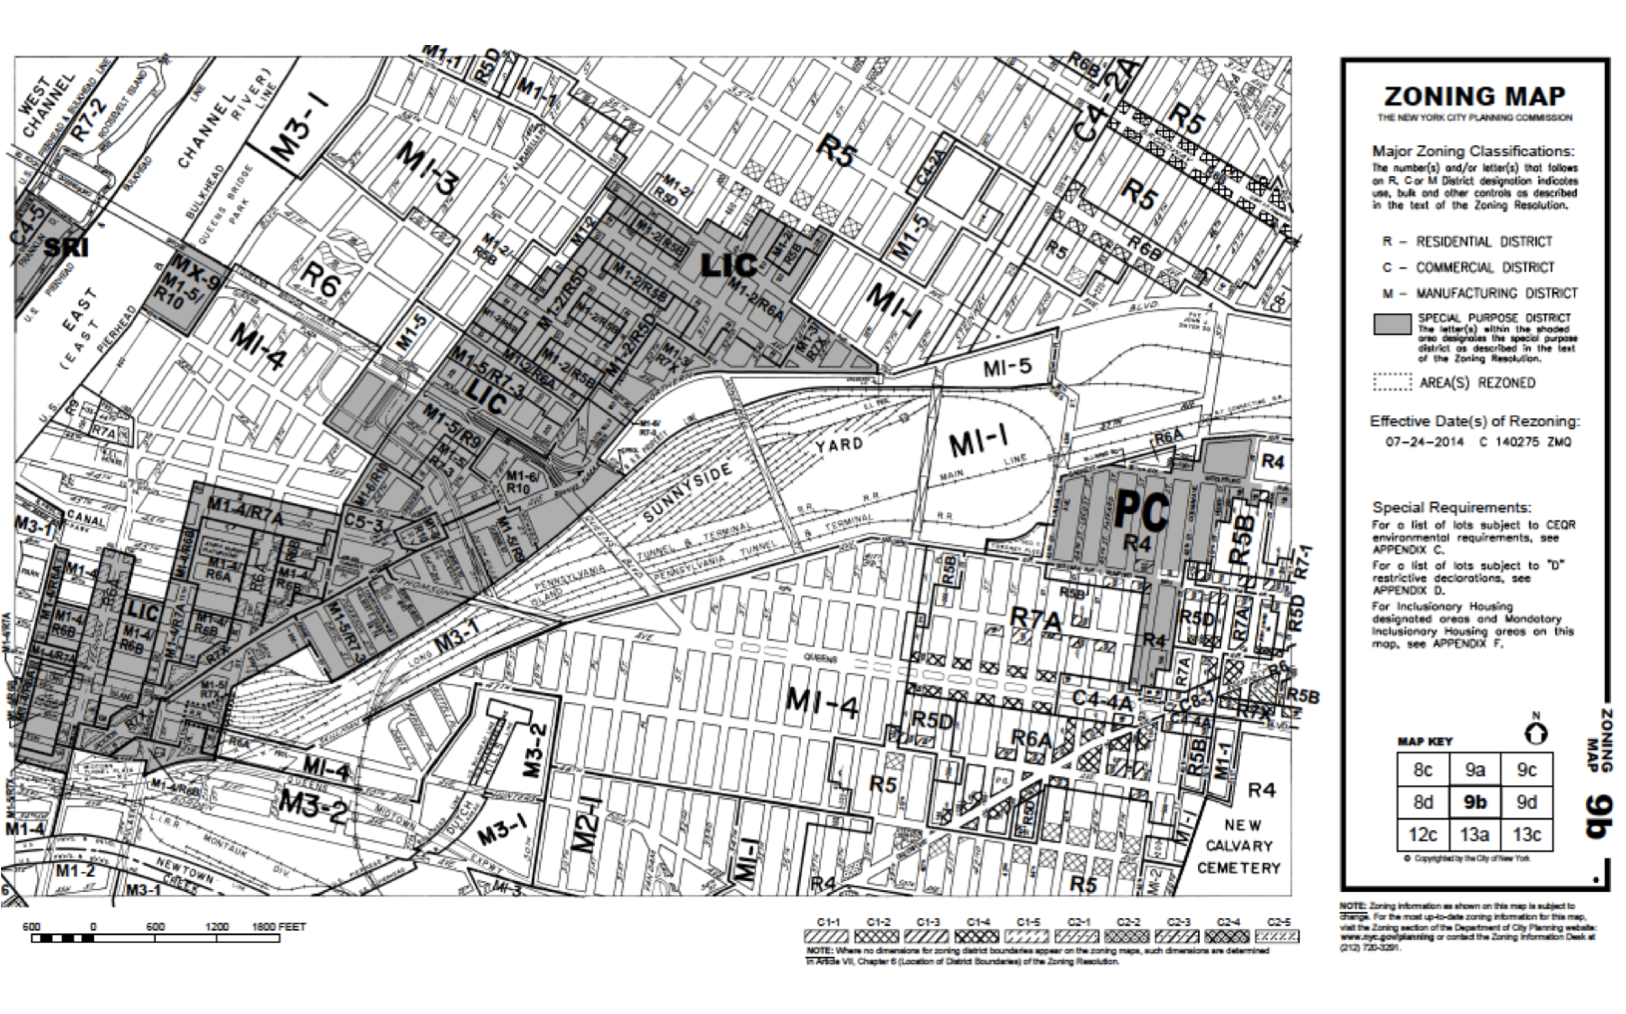 Planning Map of LIC. Decorative purposes. Also on front page of report.